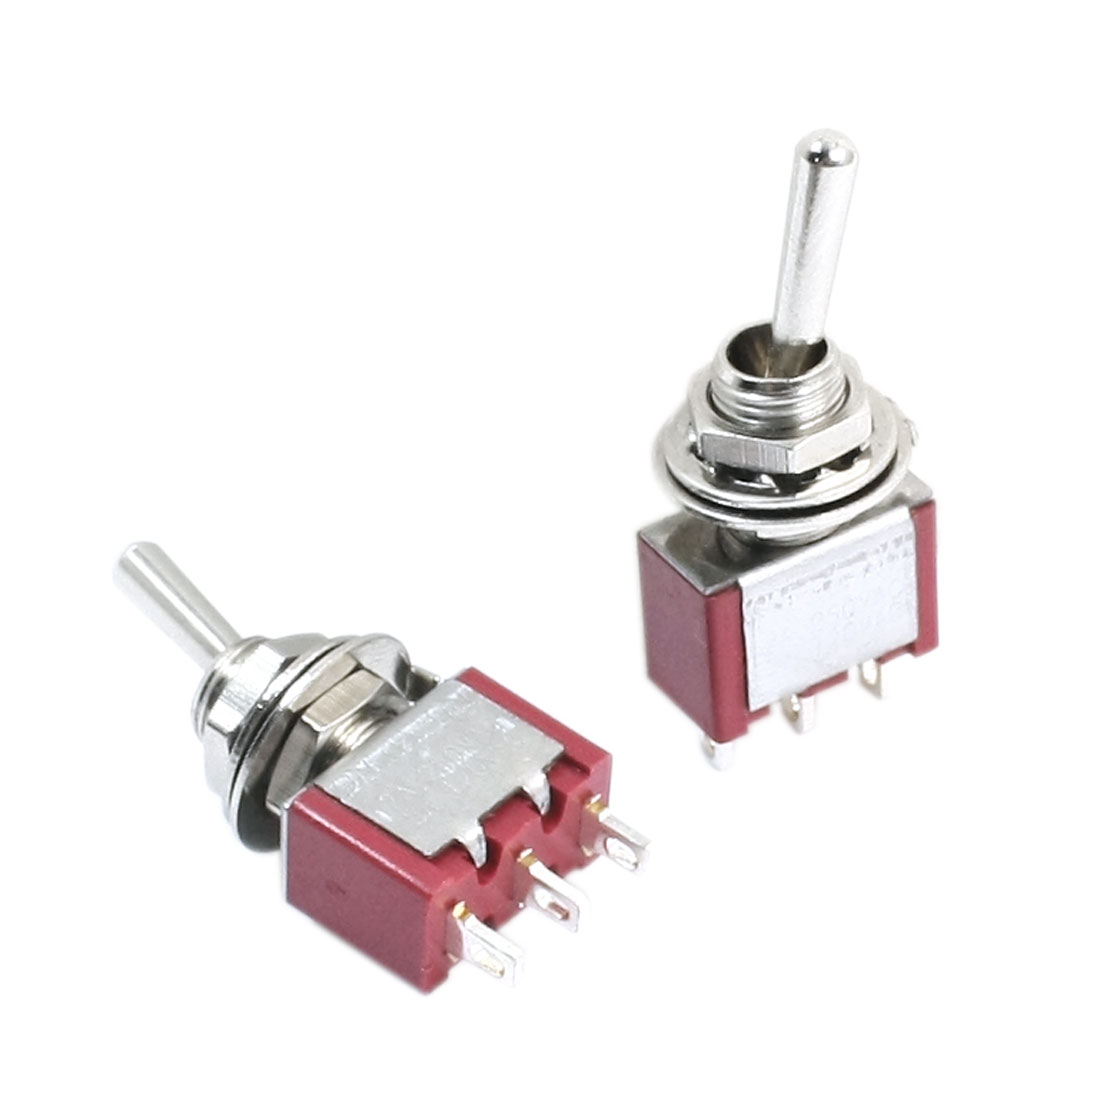 2Pcs AC 250V/2A 120V/5A Momentary SPDT 2 Positions Toggle Switches